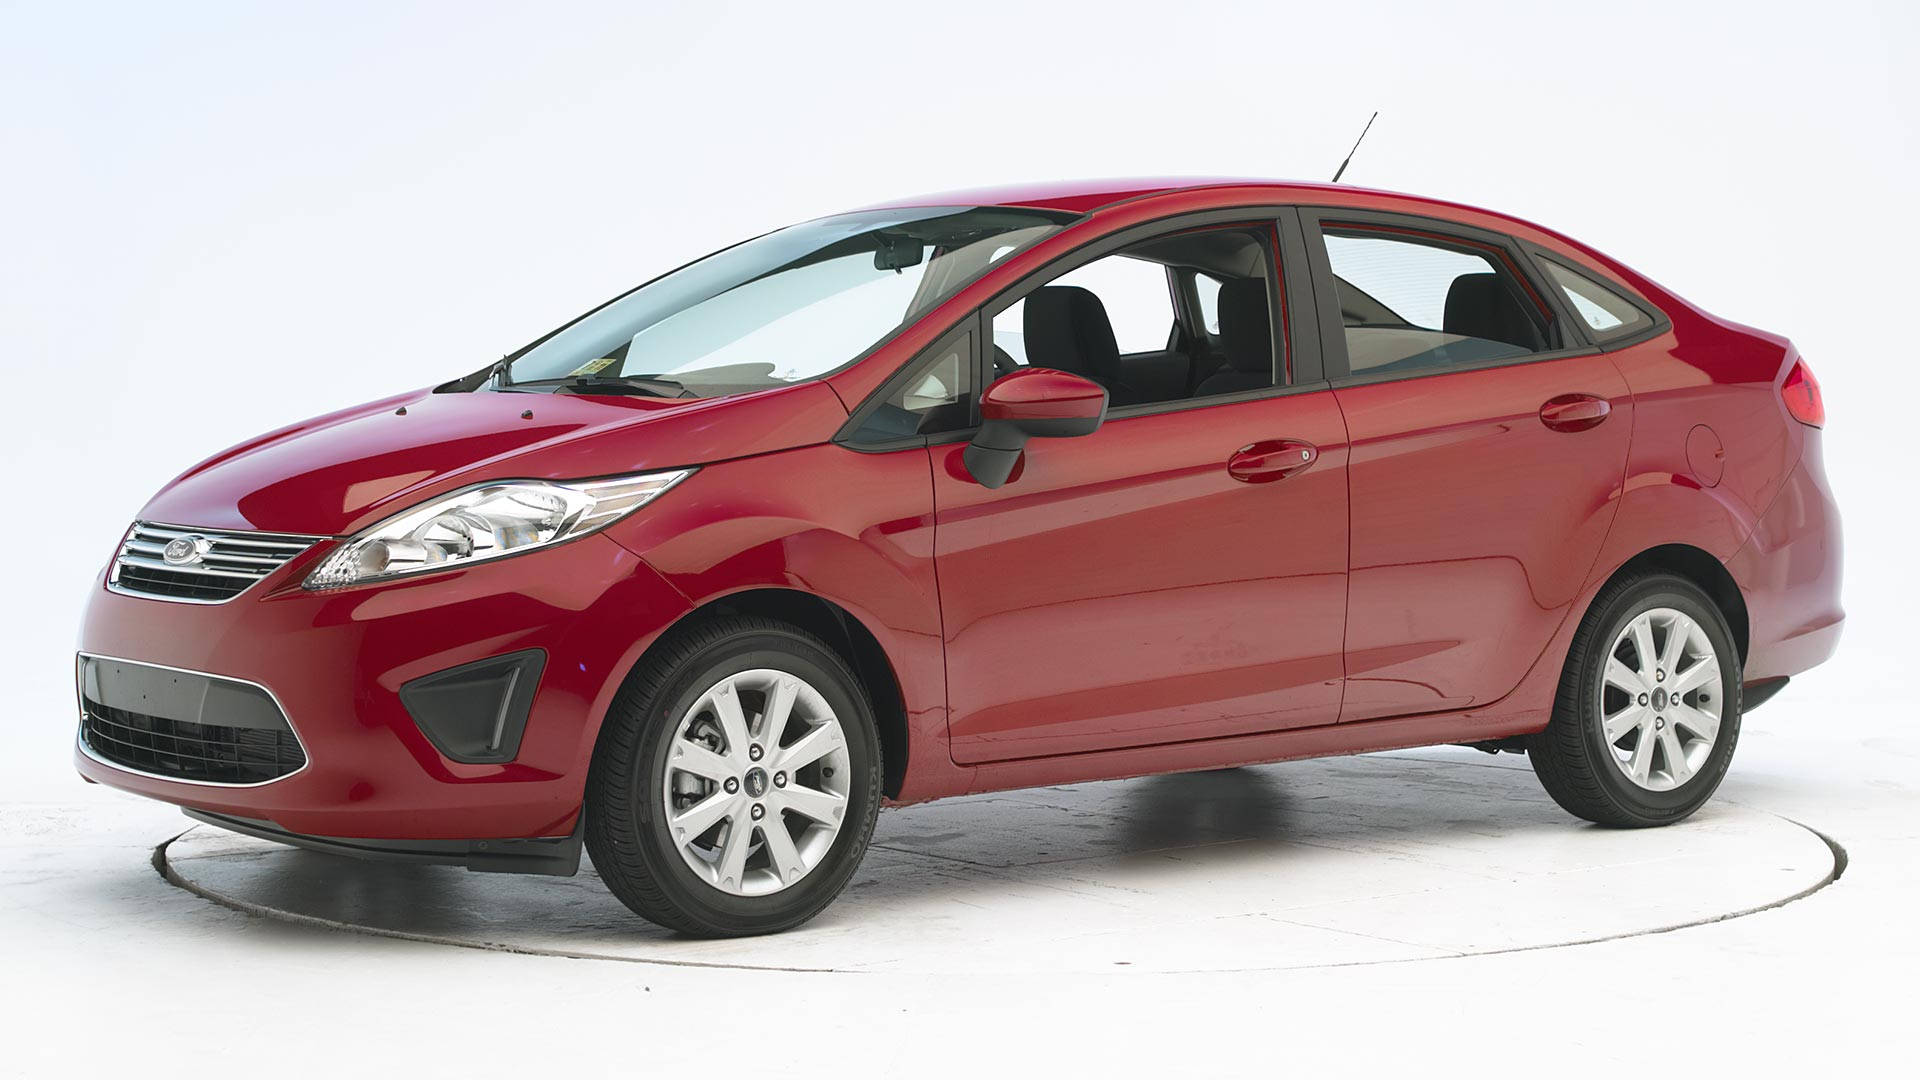 2013 Ford Fiesta 4-door sedan